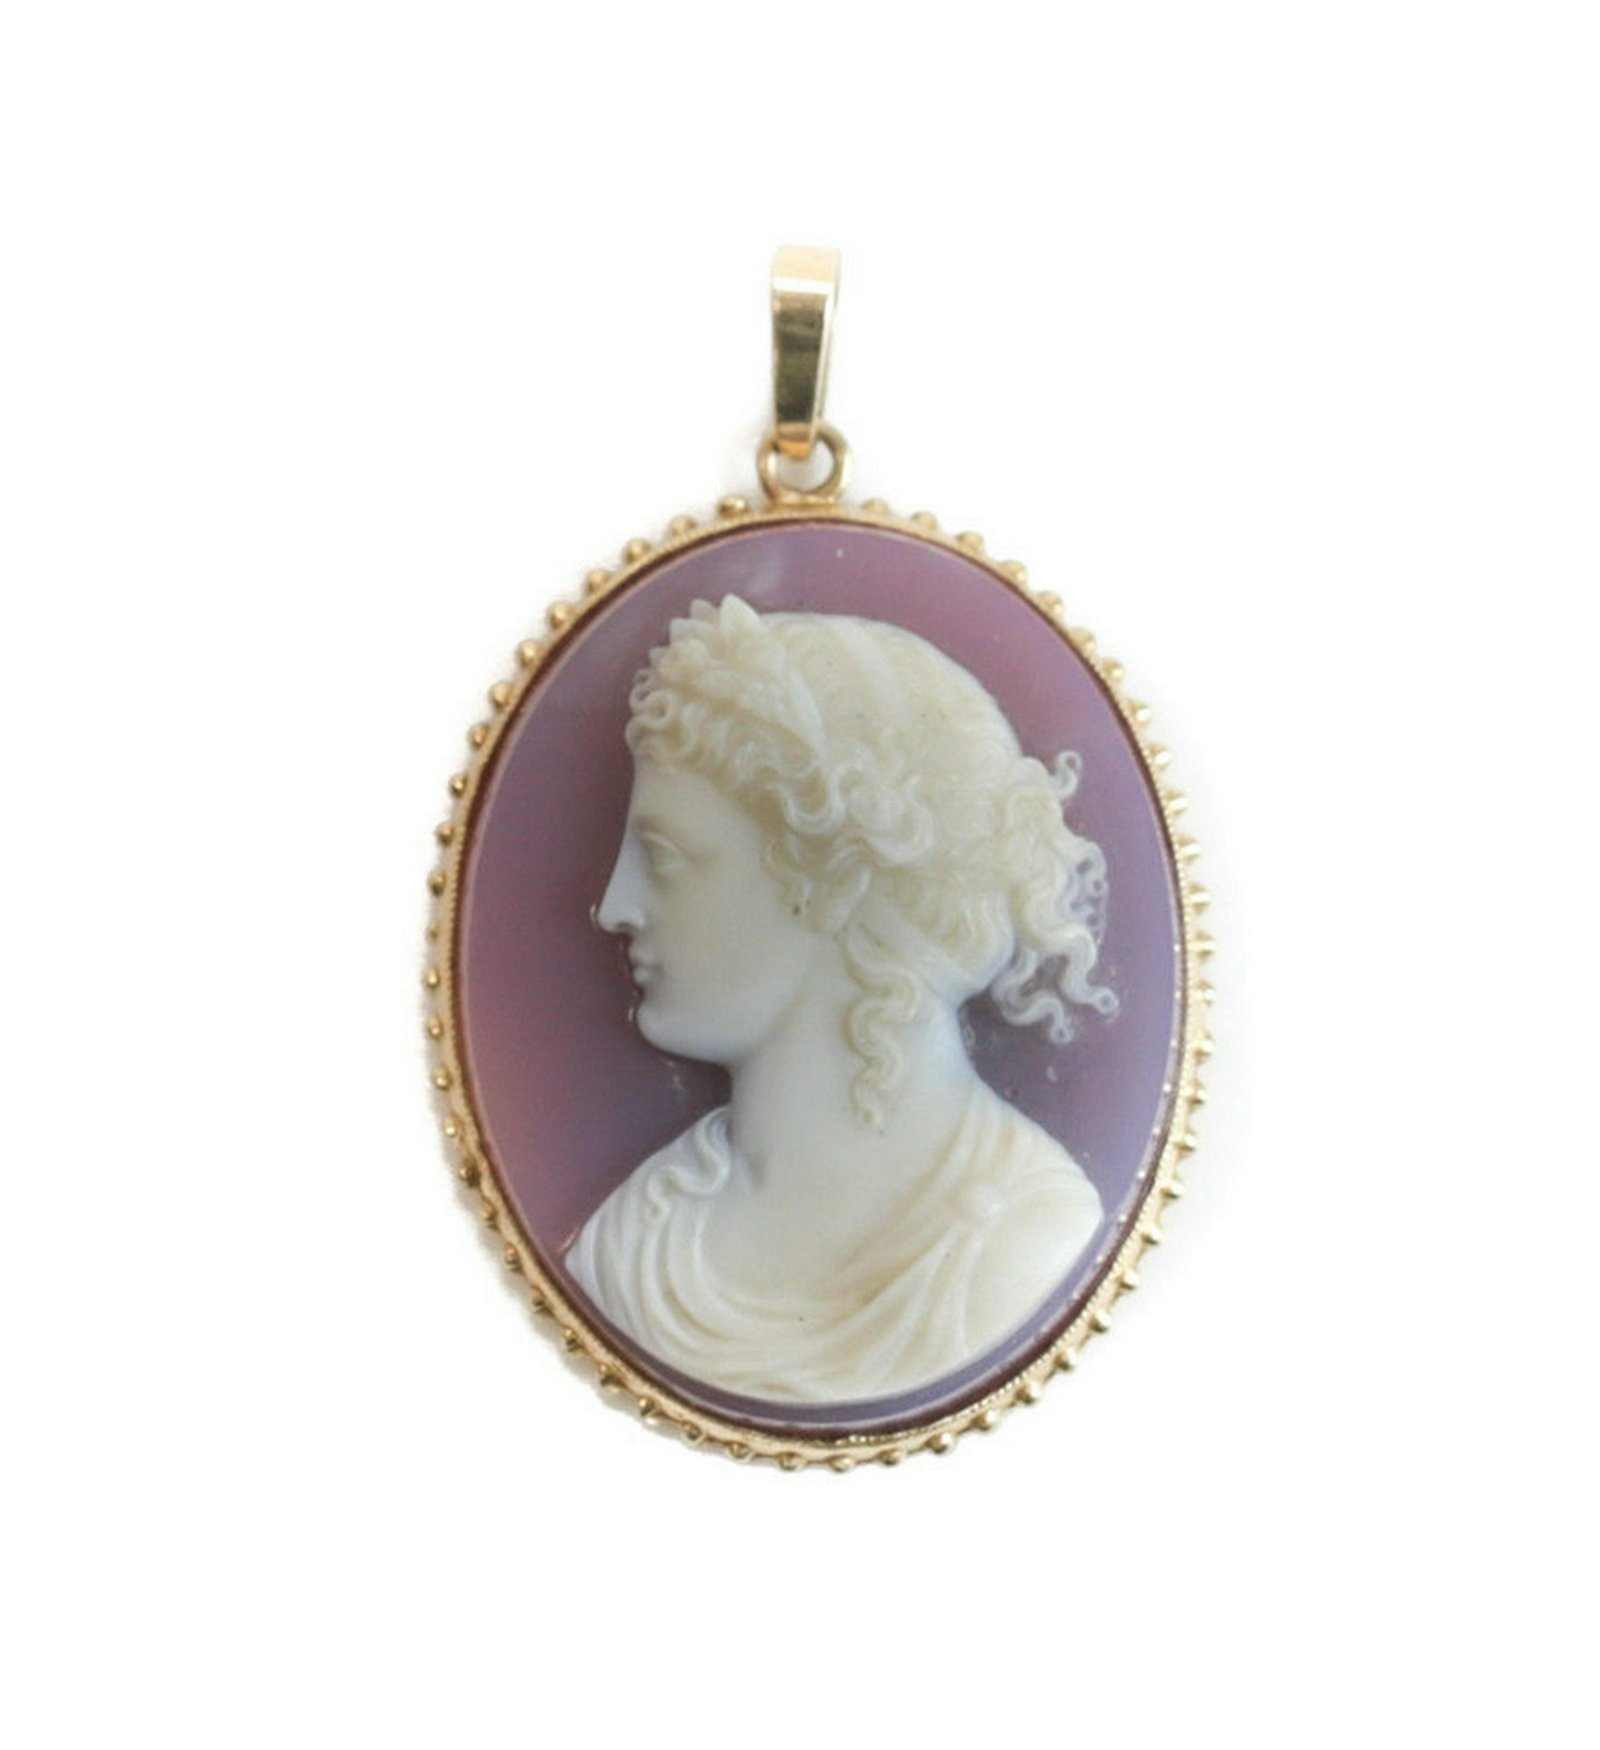 14k Yellow Gold Hand Carved Agate Cameo Pin